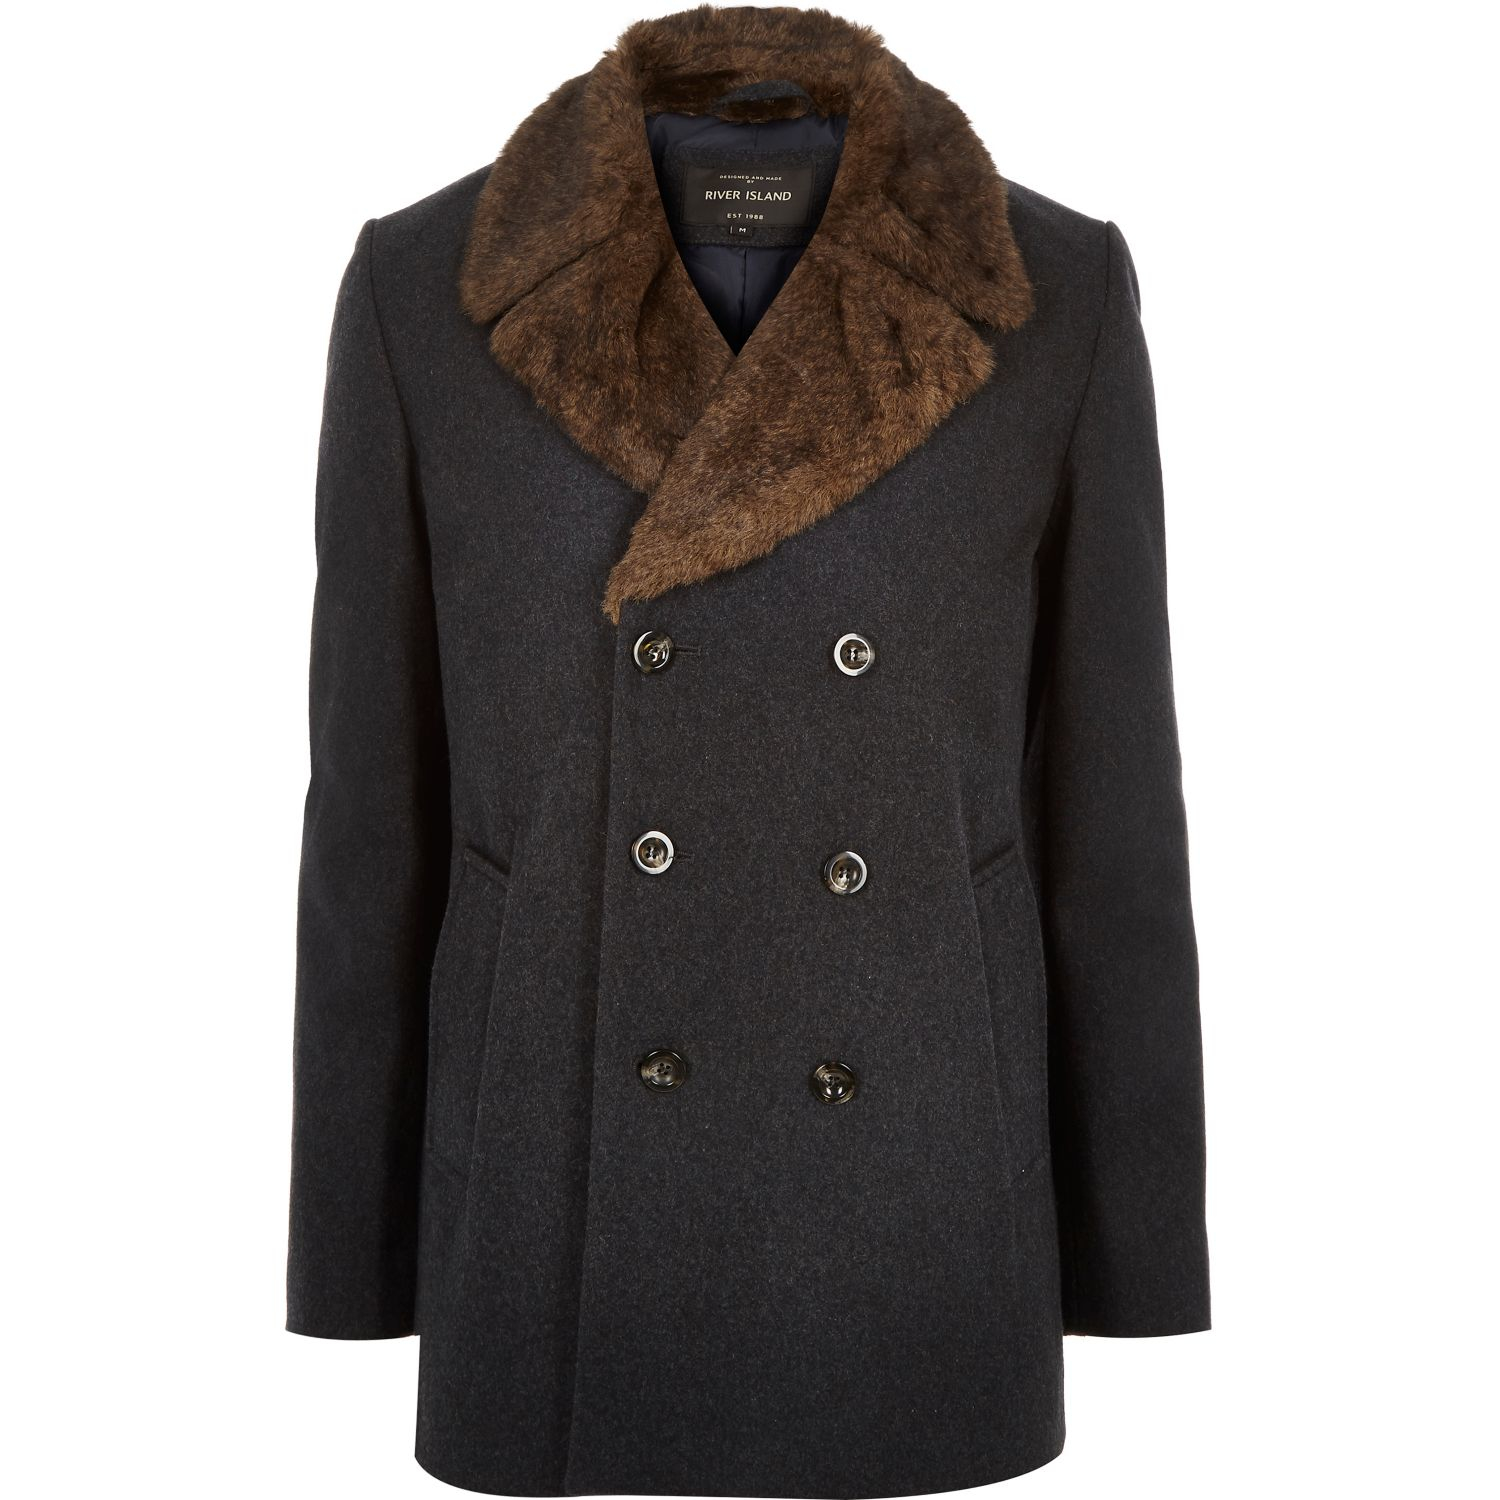 Stunning selection of stylish women's peacoats, duffle coats and wool coats at great prices at Hudson's Bay. Get free shipping across Canada on orders over $